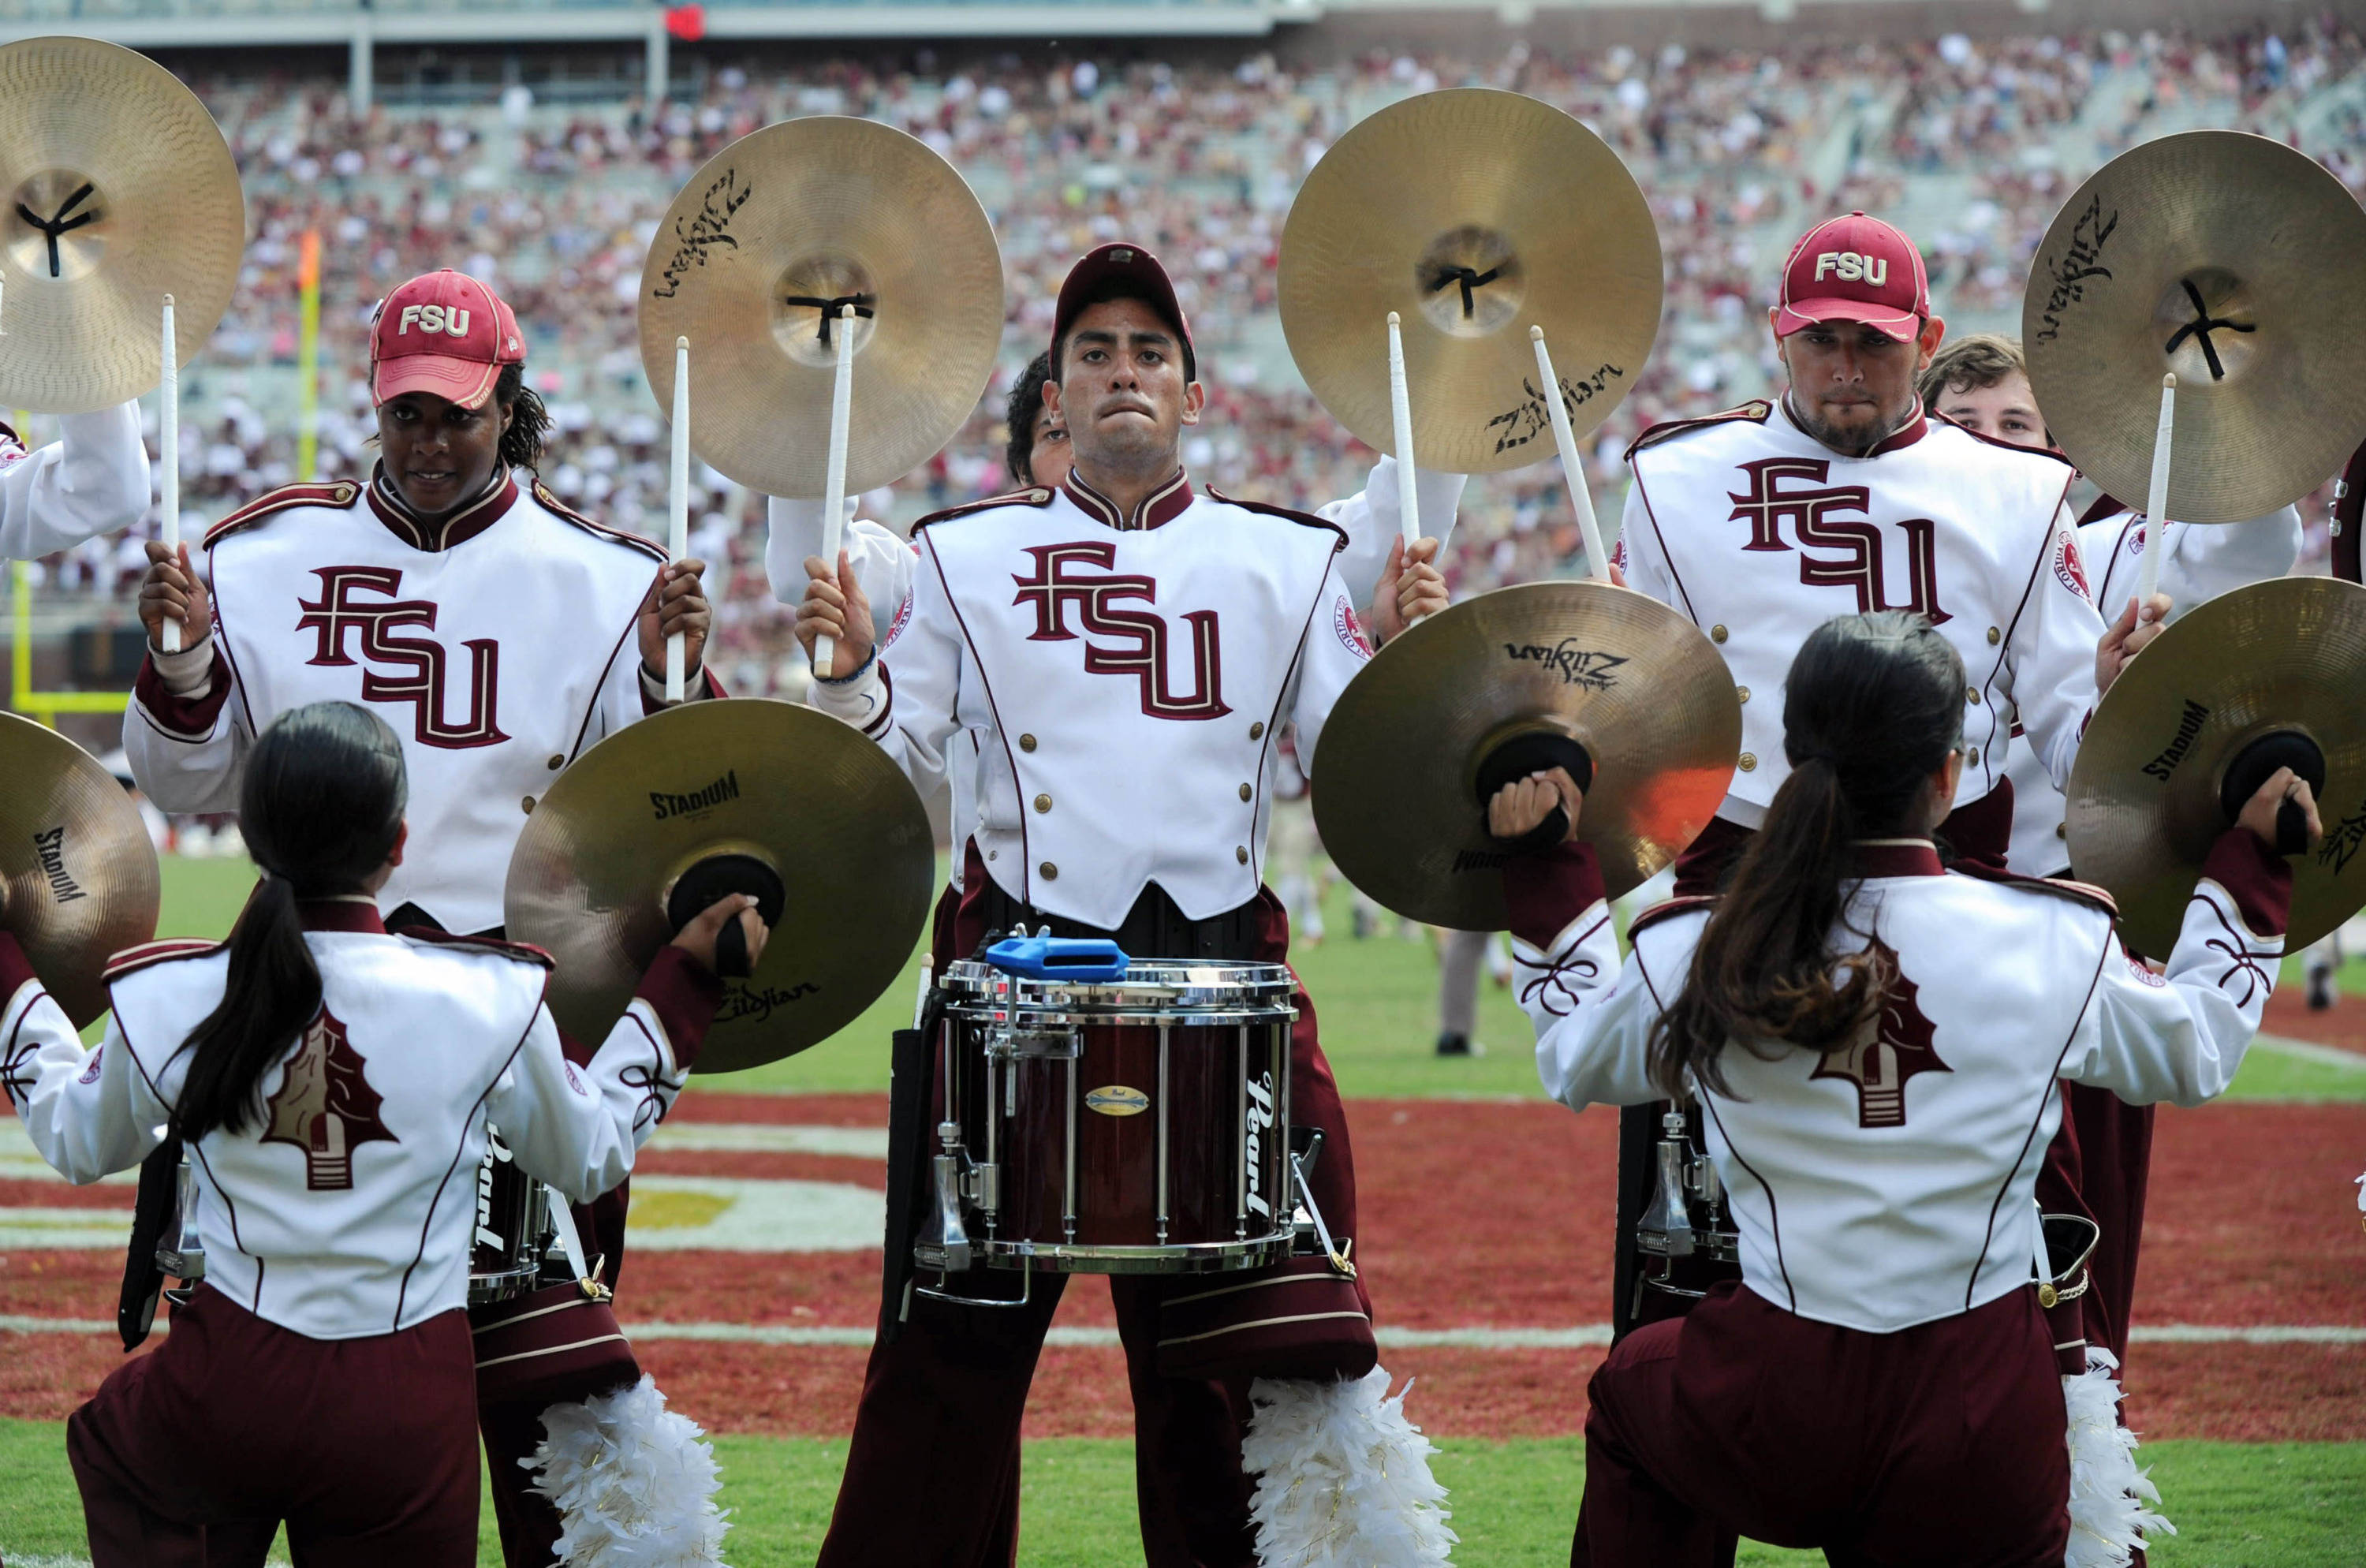 Oct 5, 2013; Tallahassee, FL, USA; Florida State Seminoles drumline Big-8 performs during the game against the Maryland Terrapins at Doak Campbell Stadium. Mandatory Credit: Melina Vastola-USA TODAY Sports